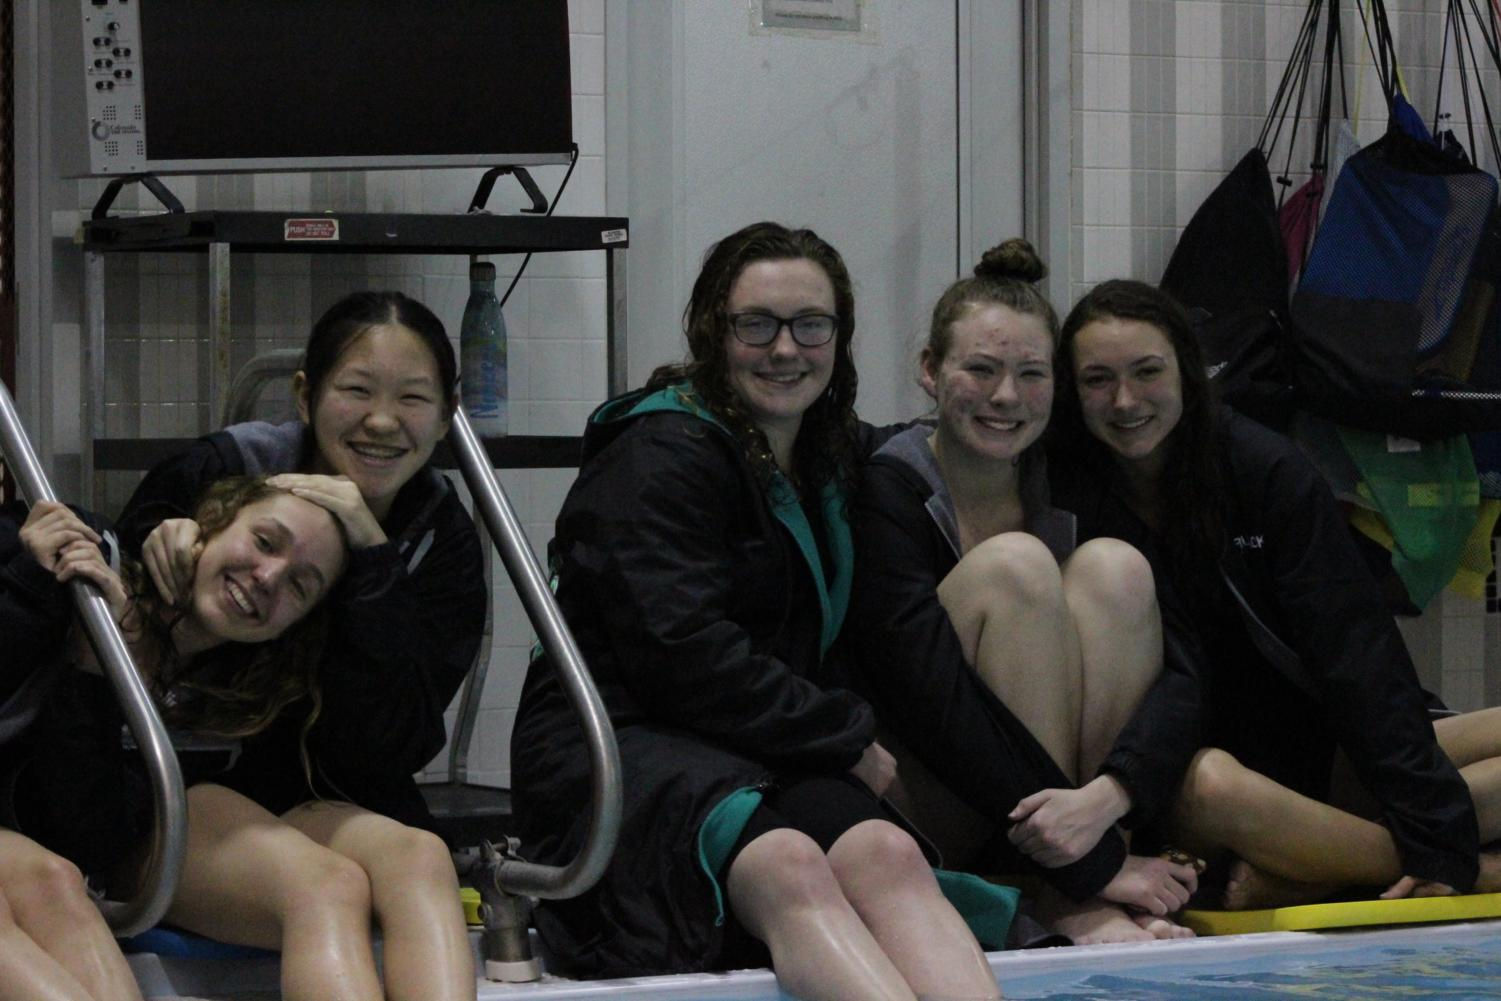 %28from+left%29+Hailey+McGarity%2C+Stephanie+Yu%2C+Erin+Valle%2C+Kerri+Drum+and+Rachel+Prusacki+sat+poolside+to+watch+their+teammates+dive.++%0A